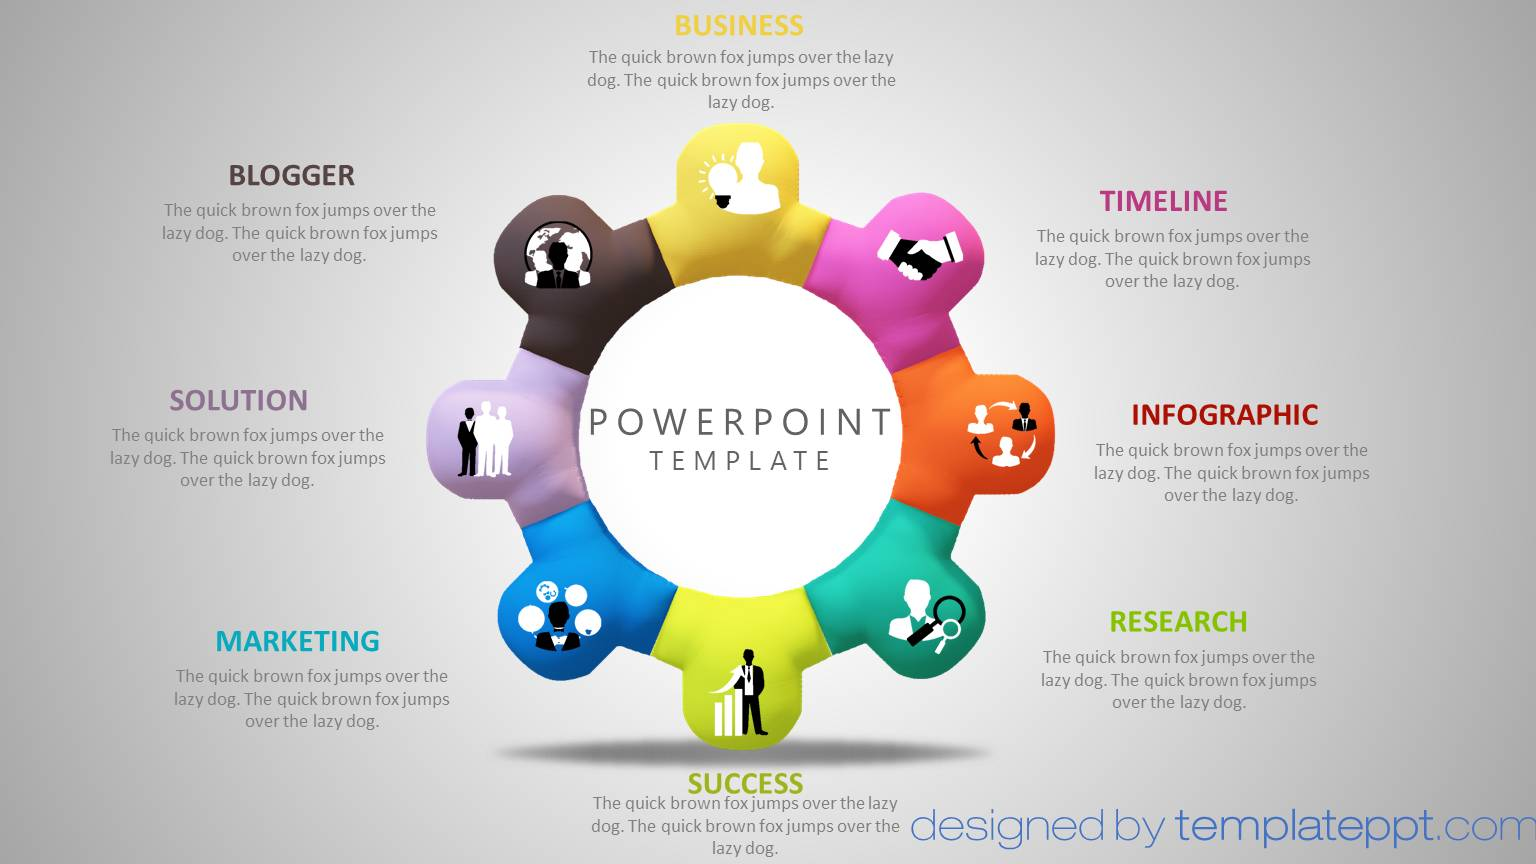 Powerpoint Animated Templates Free Download 2015